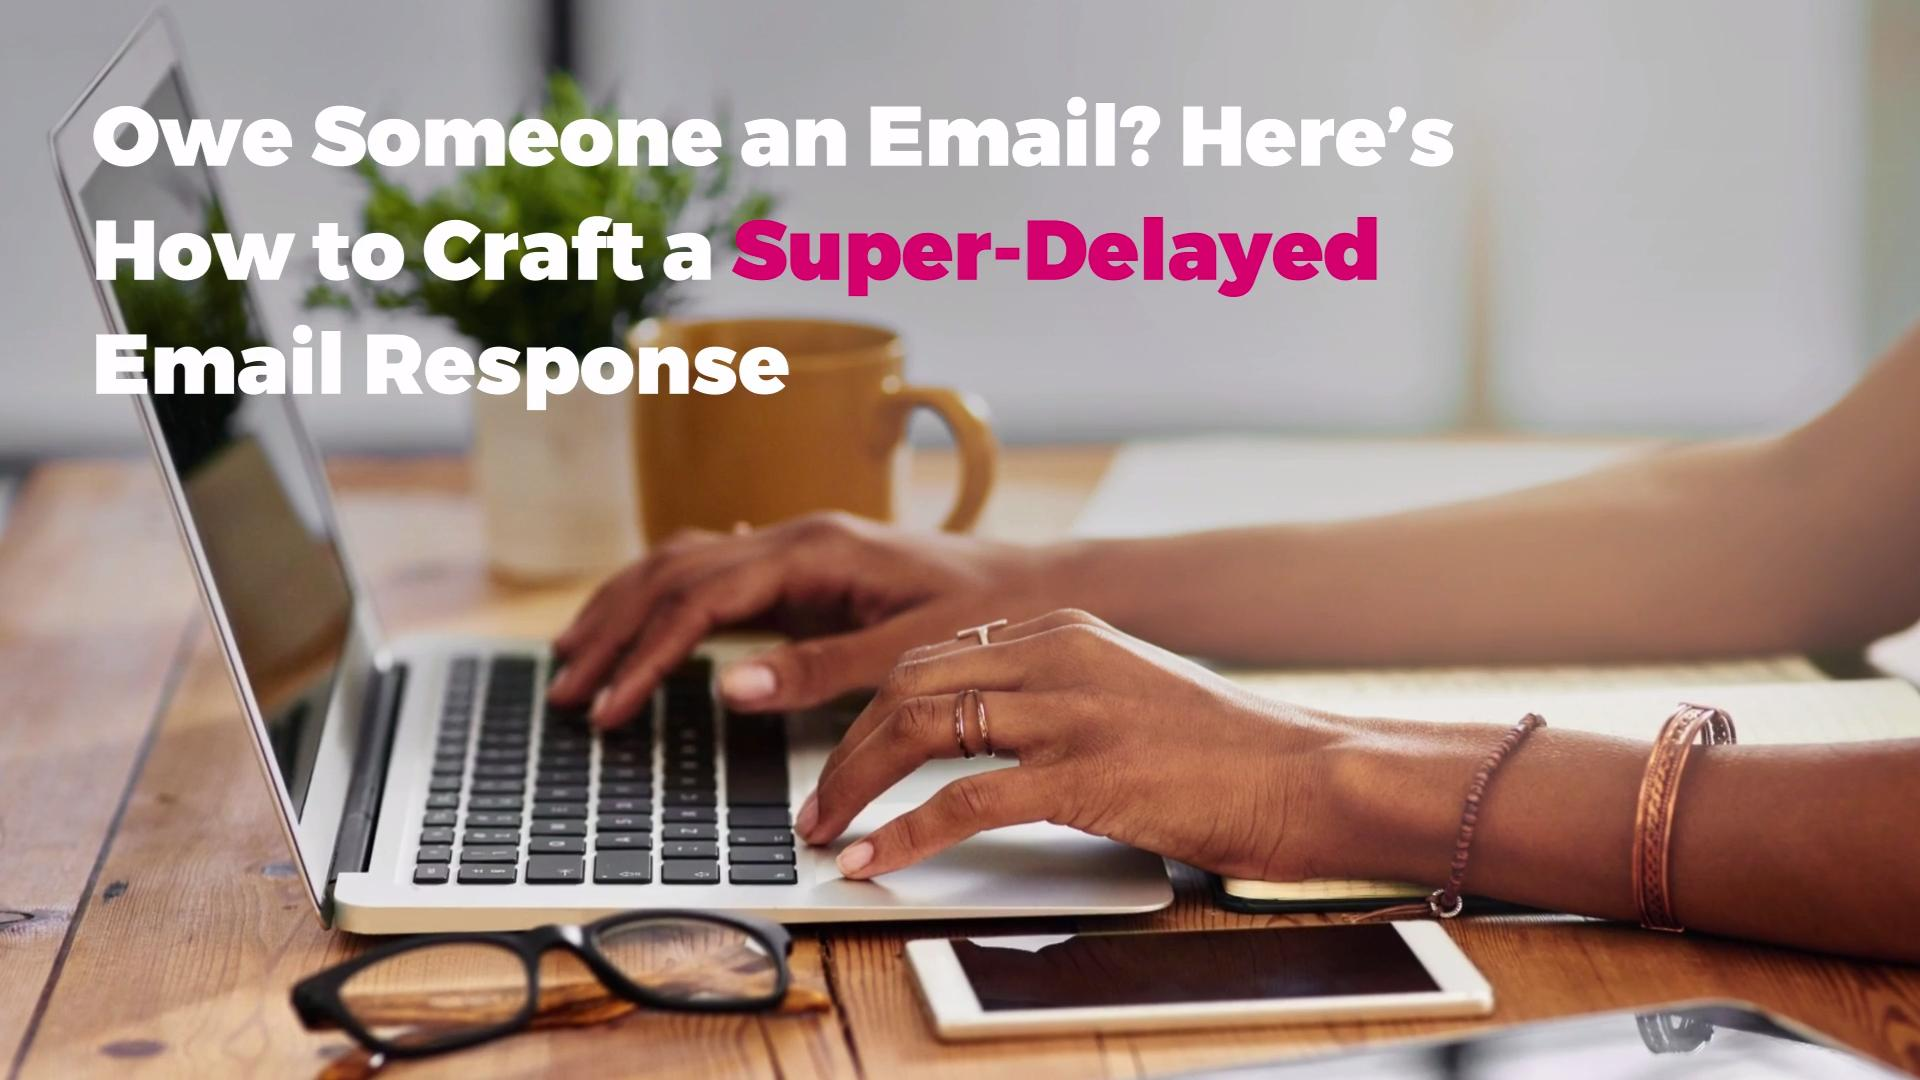 Owe Someone an Email? Here's How to Craft a Super-Delayed Email